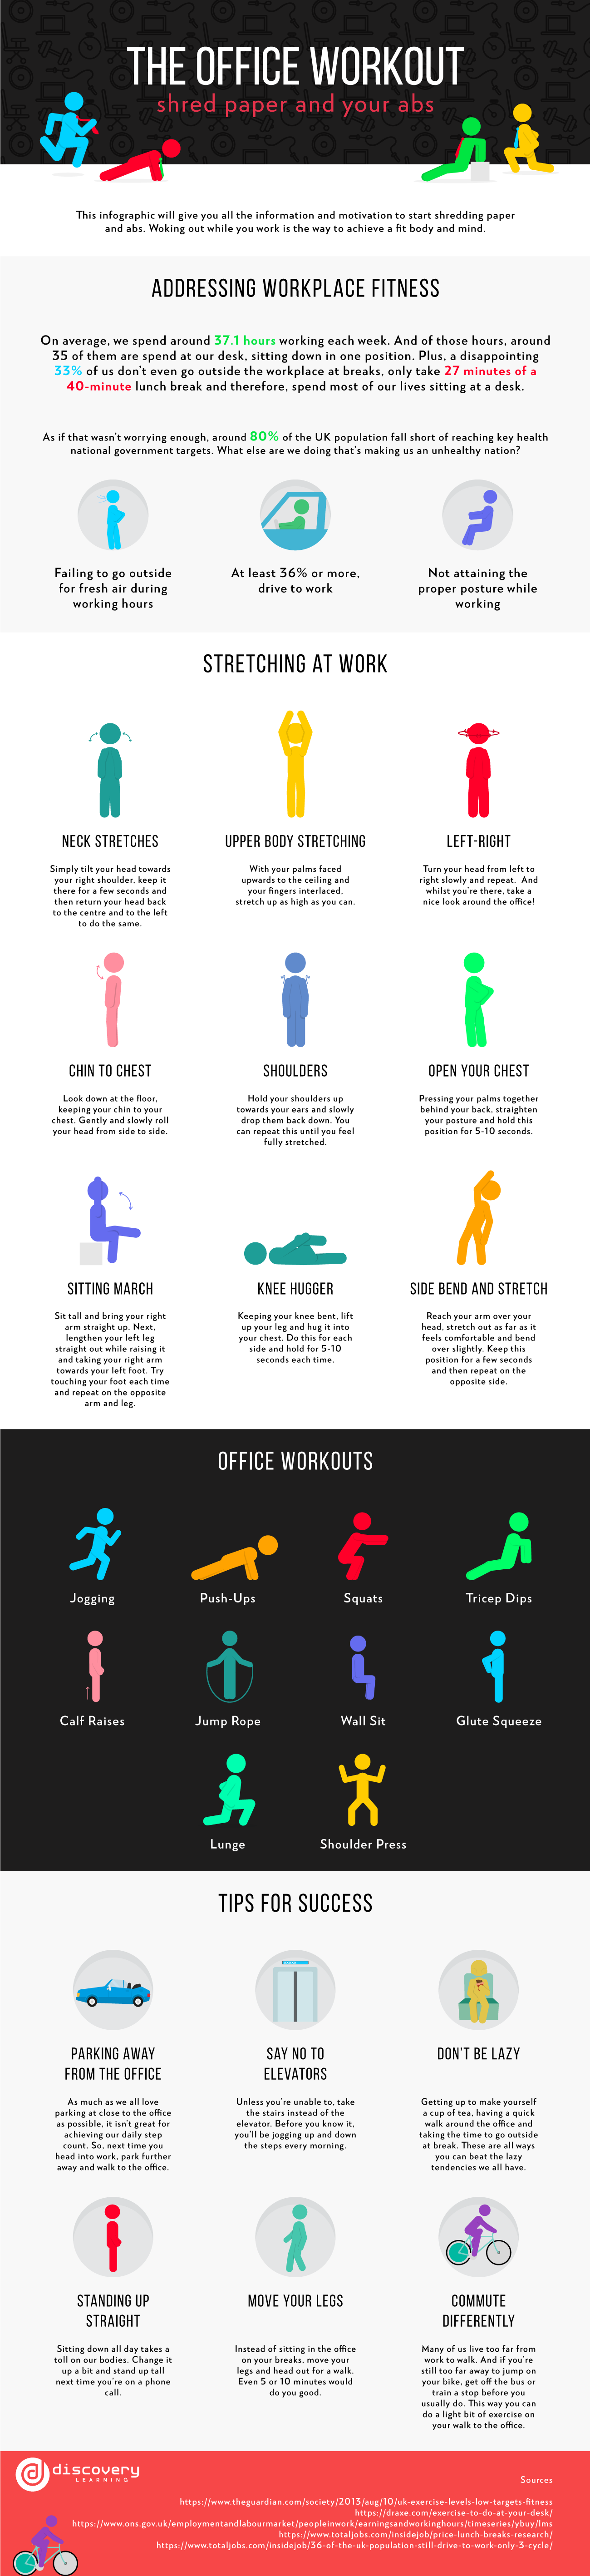 Office-workout-infographic